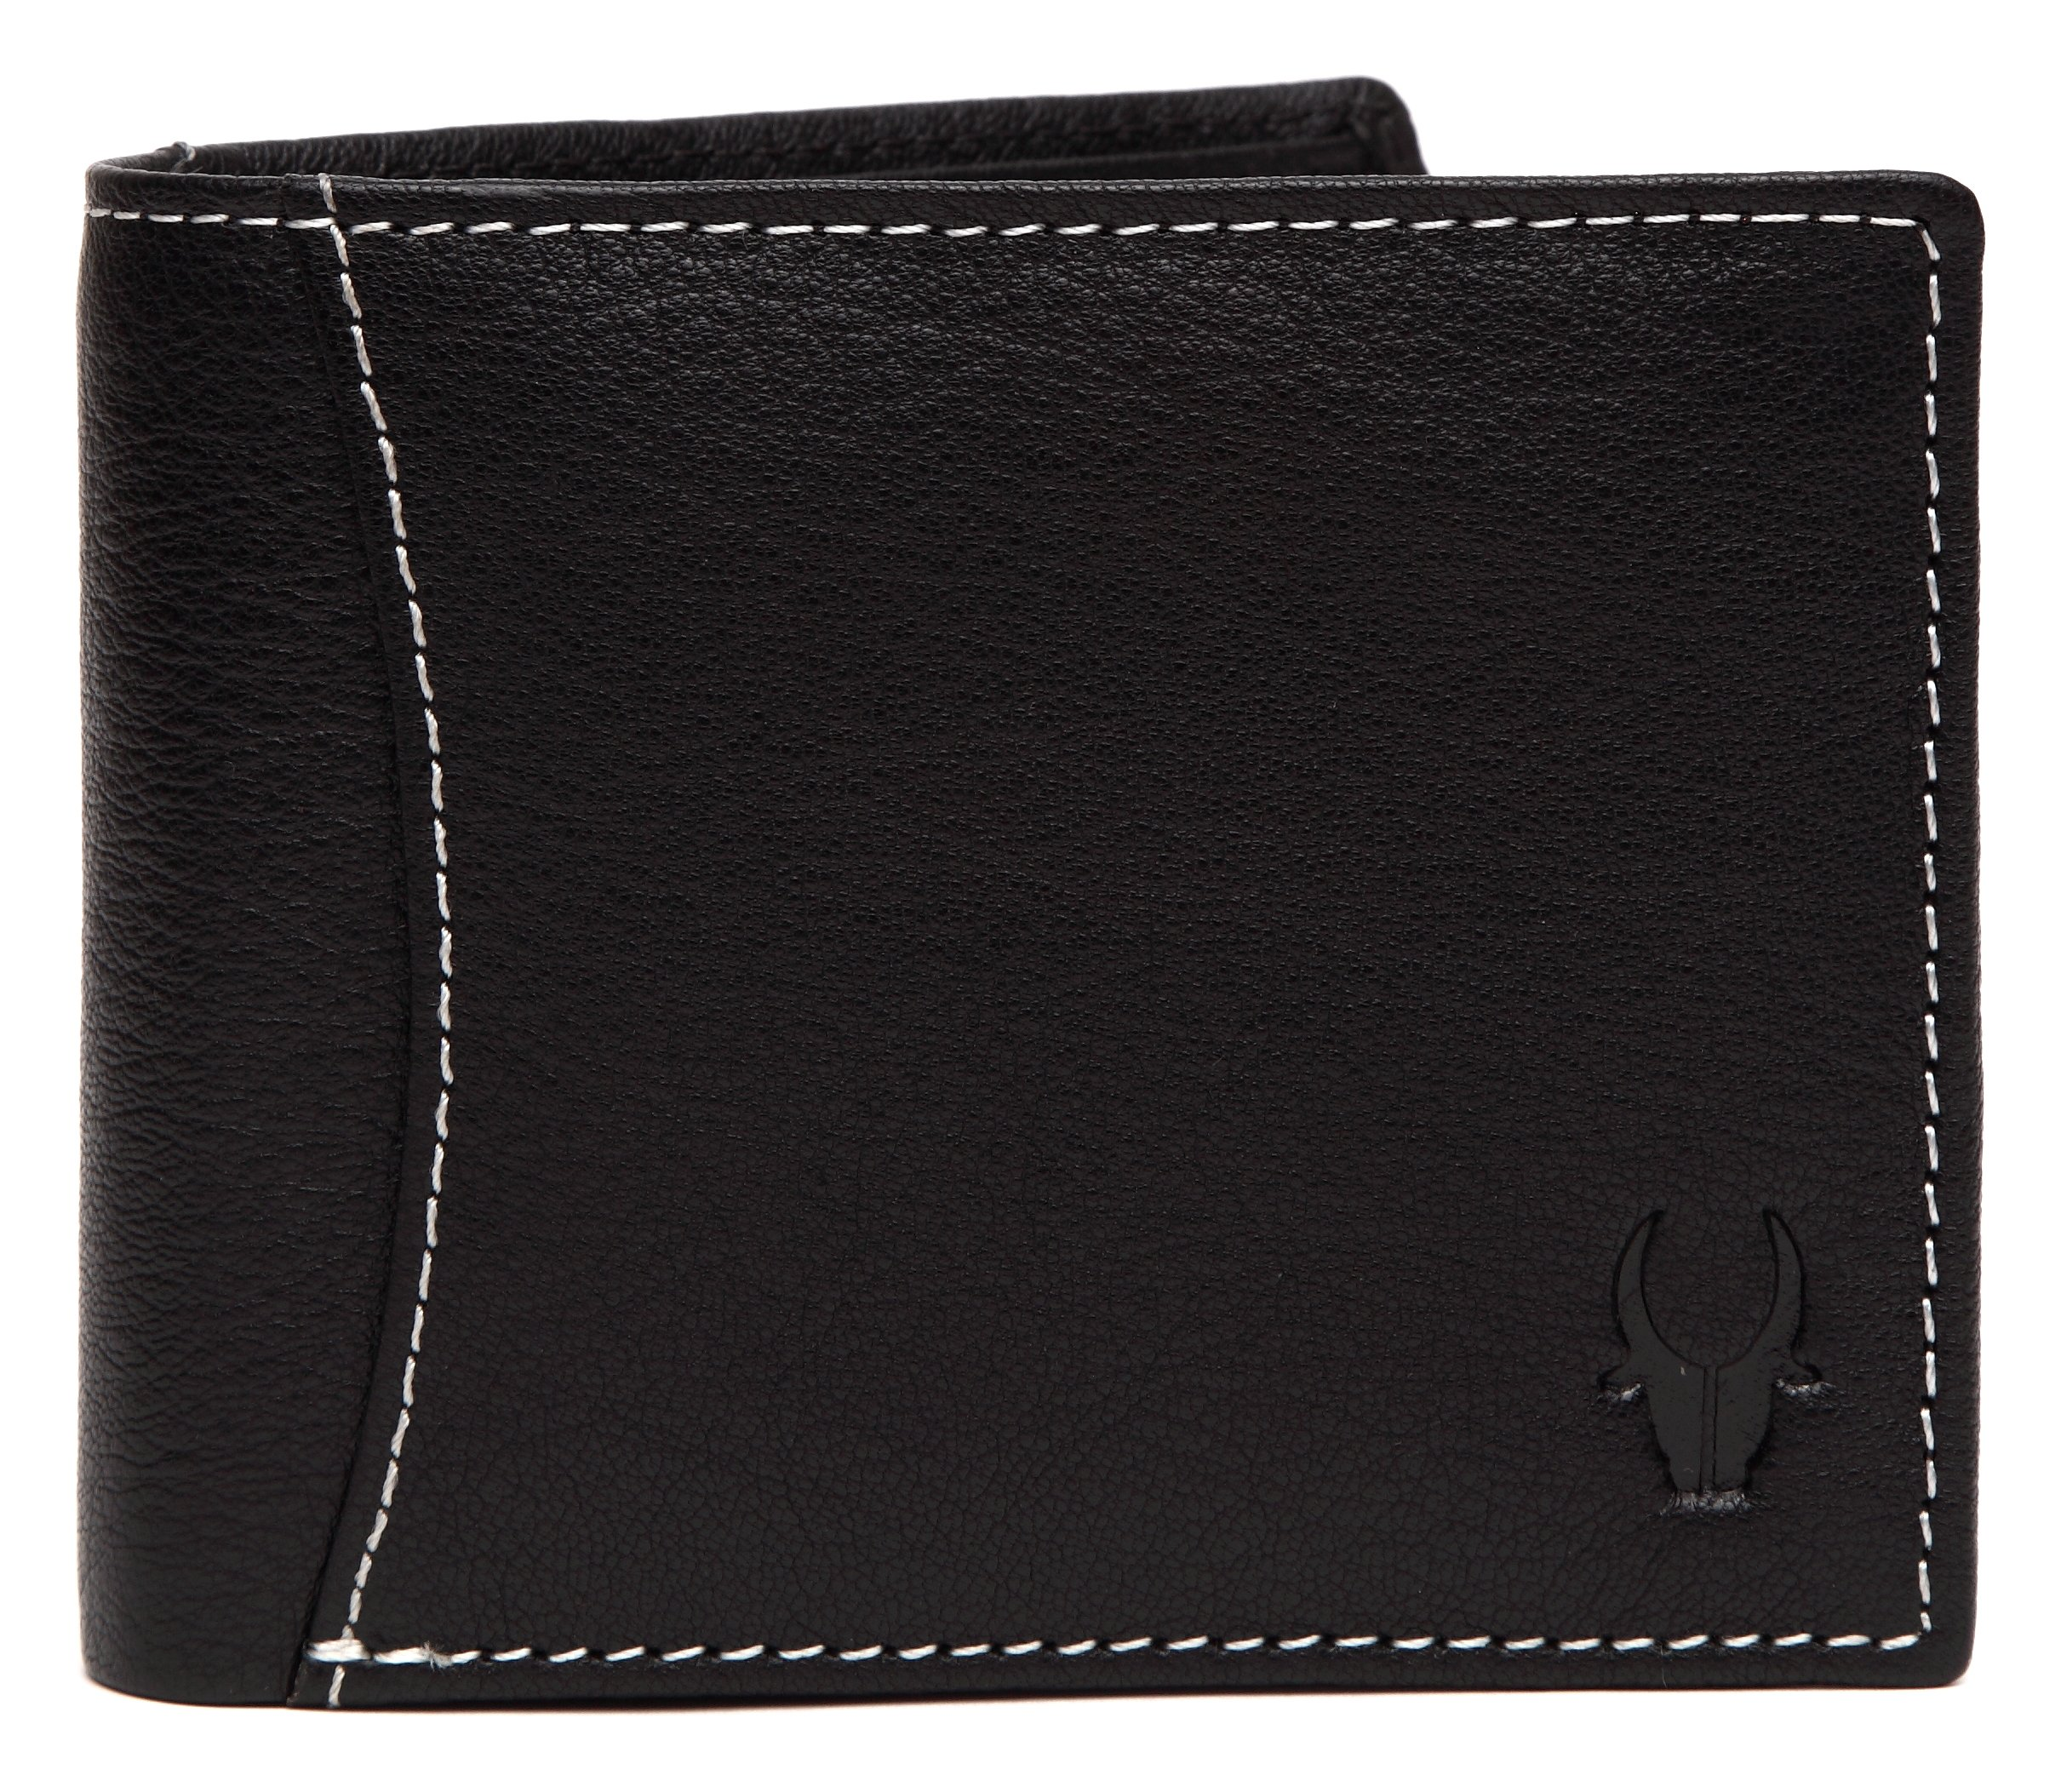 WildHorn Black Men's Wallet (WH1255)